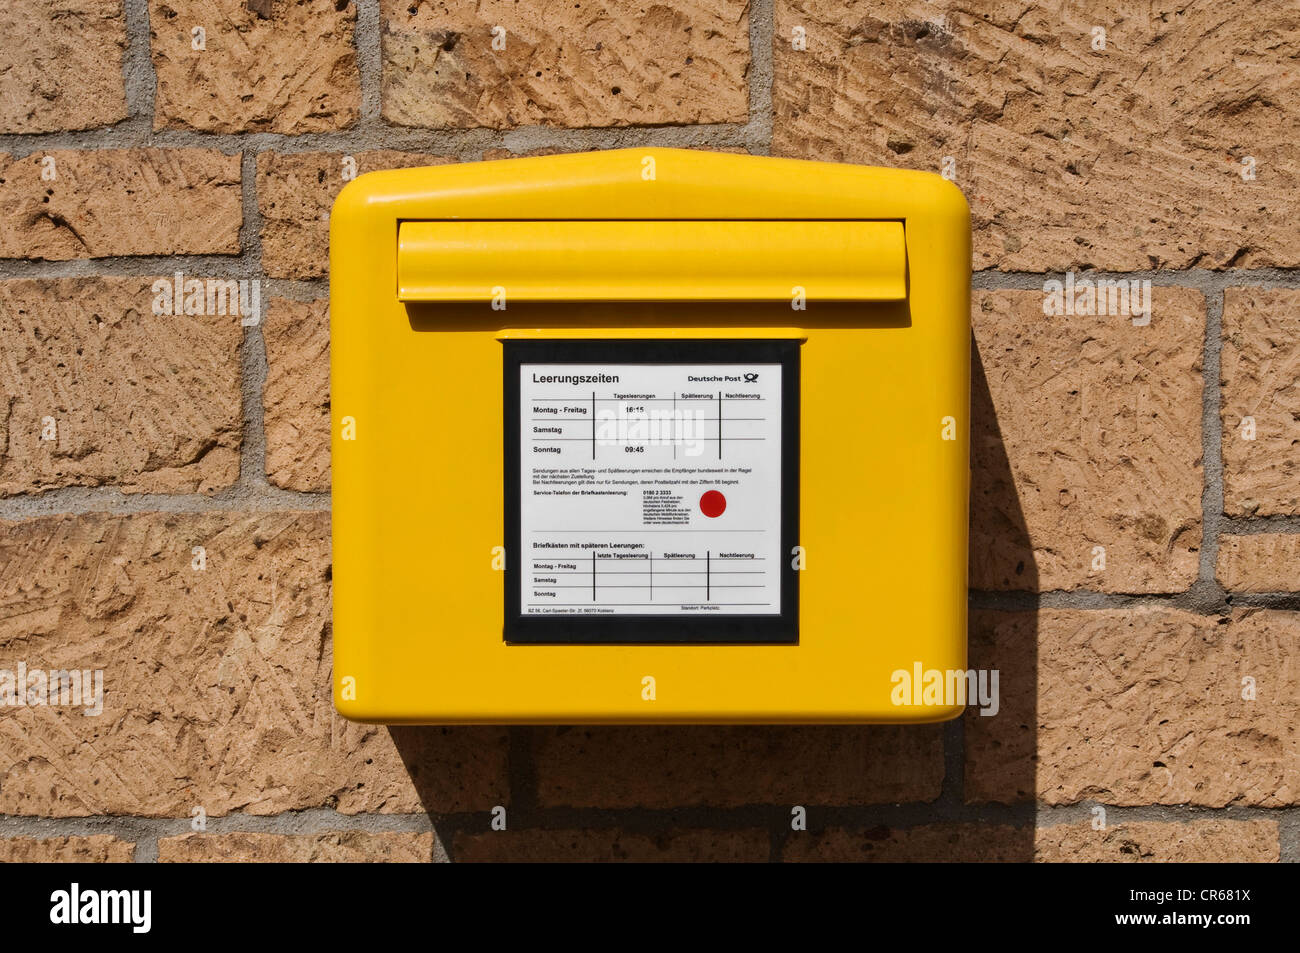 Yellow postbox on a stone wall, Germany, Europe - Stock Image